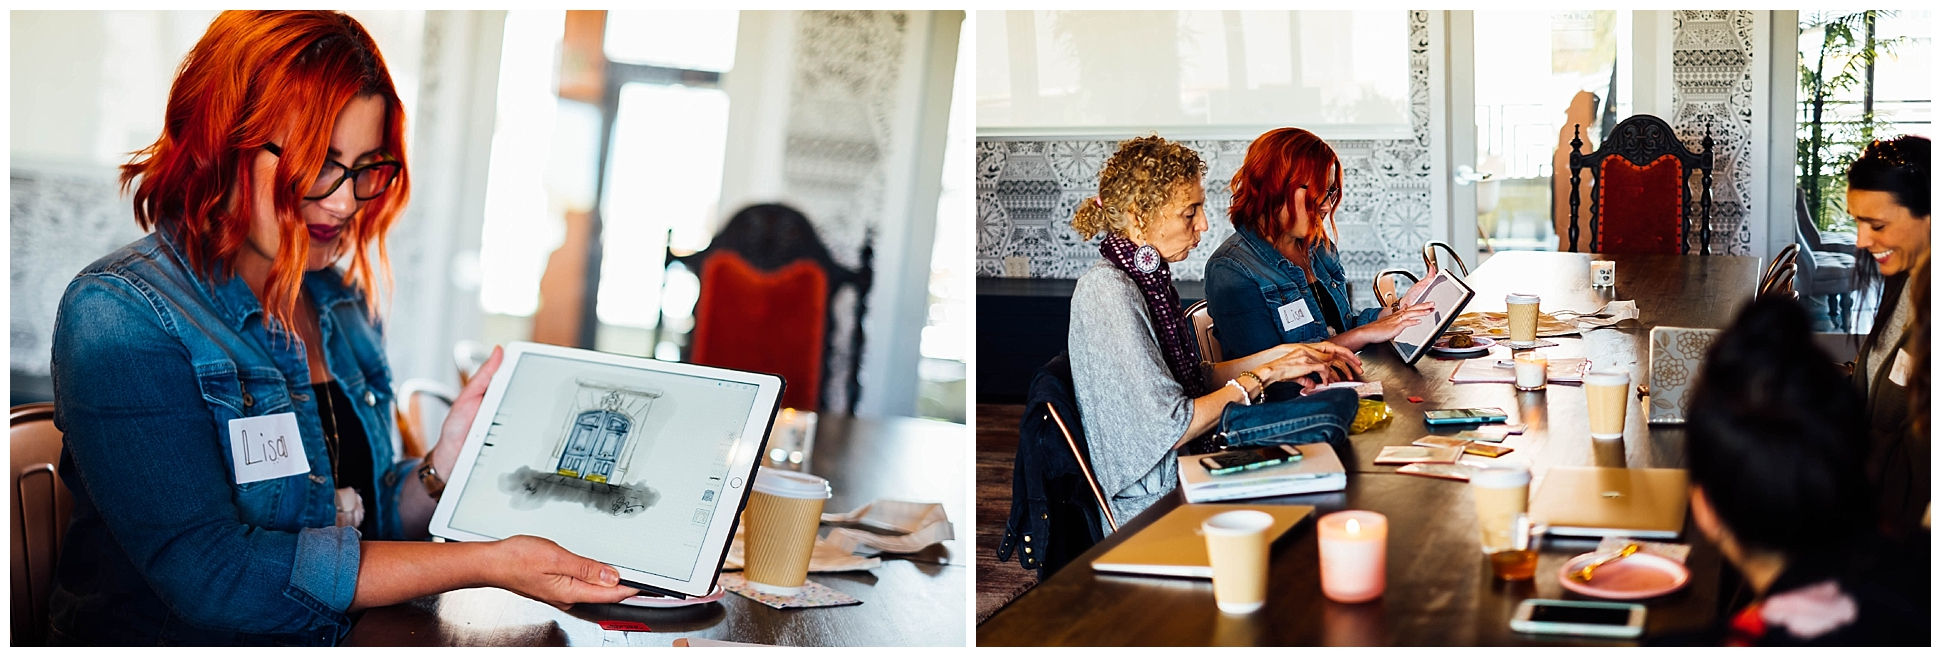 boss babe club-station house-coworking-event photography_0020.jpg